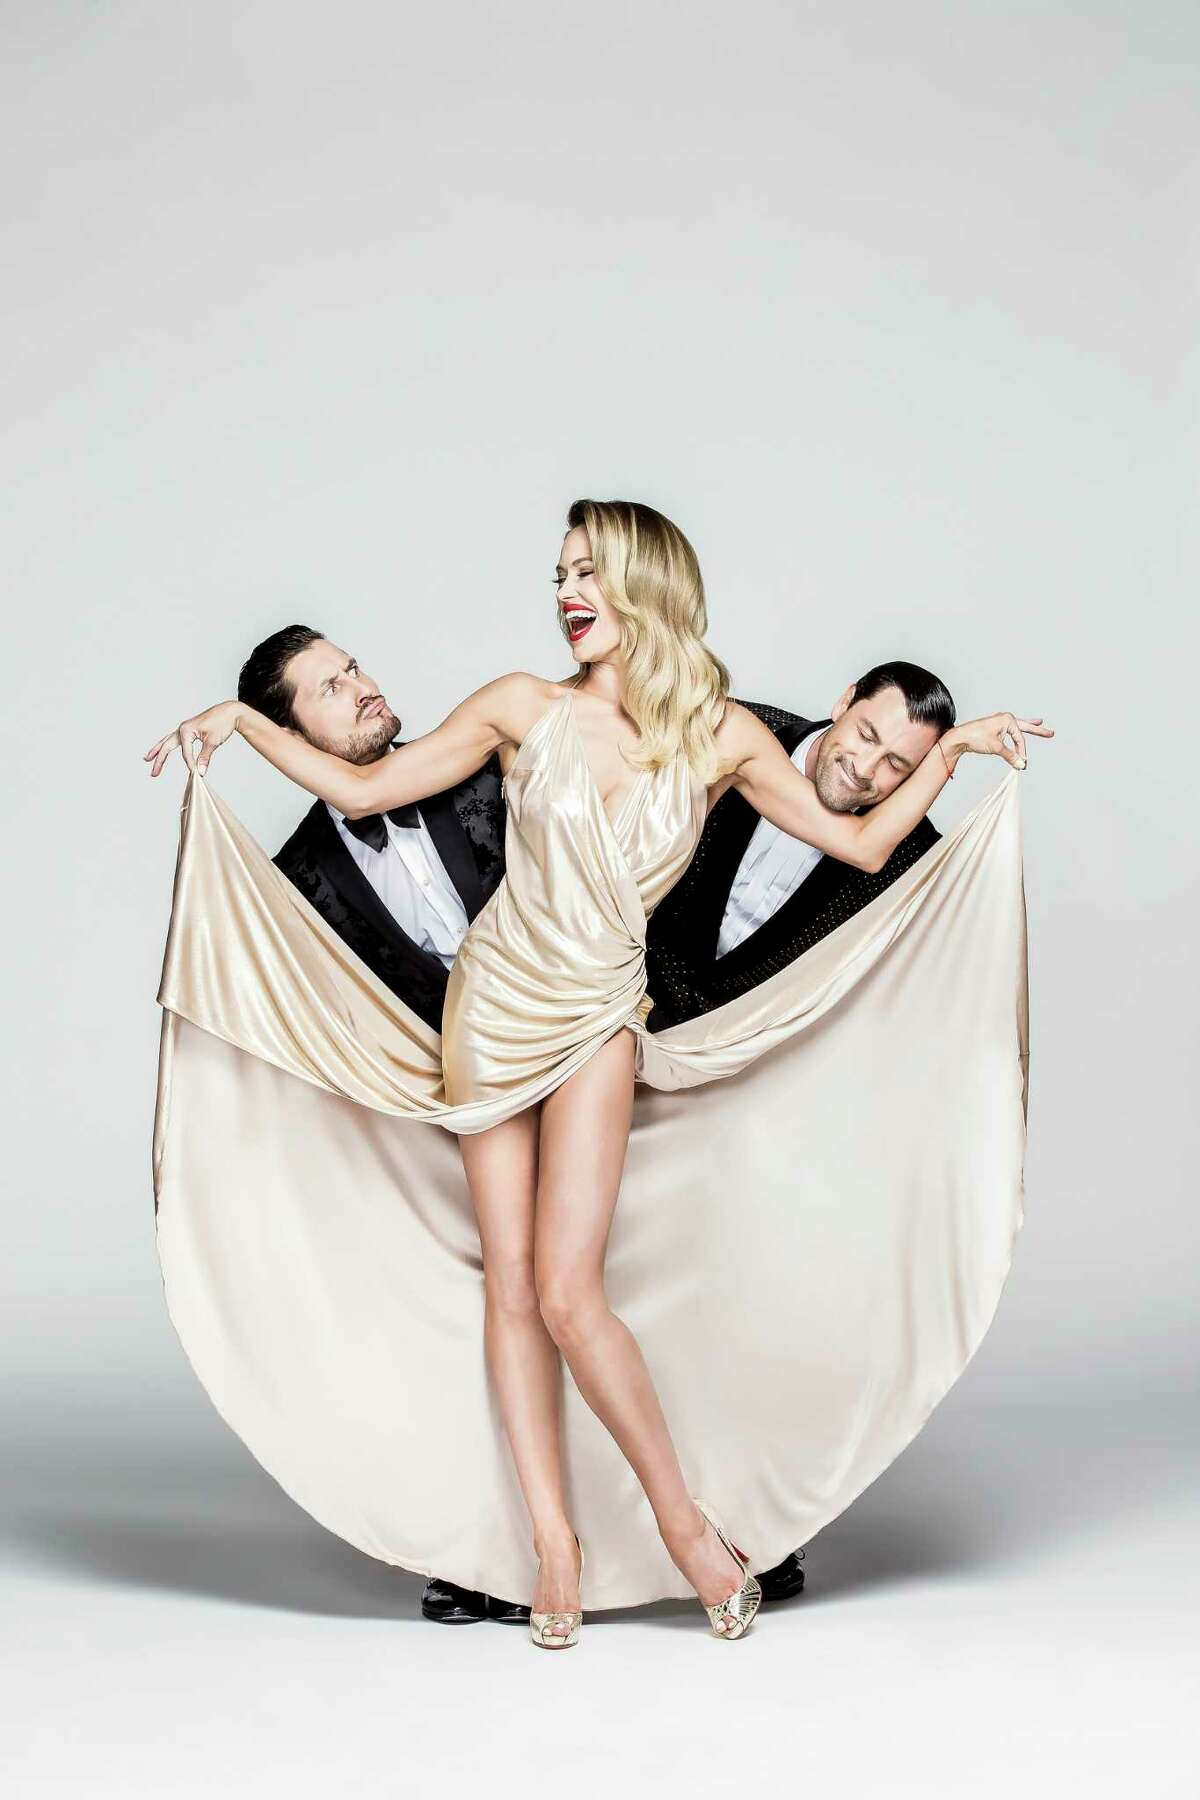 Maks and Val are Maksim and Valentin Chmerkovskiy. Peta is Maks' wife, Peta Maurgatroyd. All three are among the cast of professional dancers on